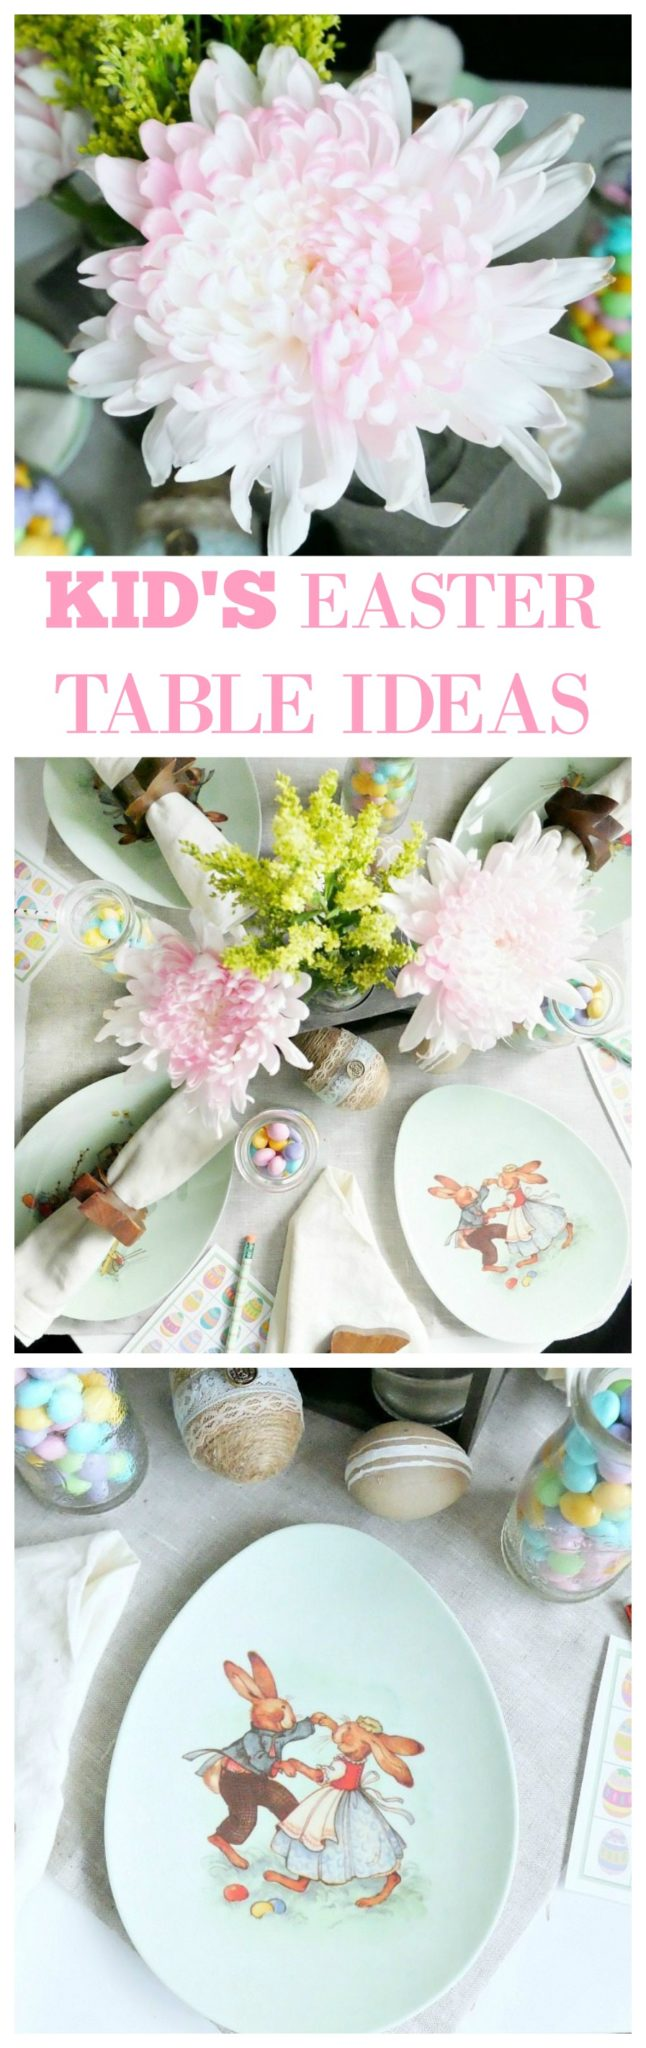 Great ideas for putting together a quick and cute Easter Table for Kids! Cute Easter plates, fresh flowers, and a little Easter treat!